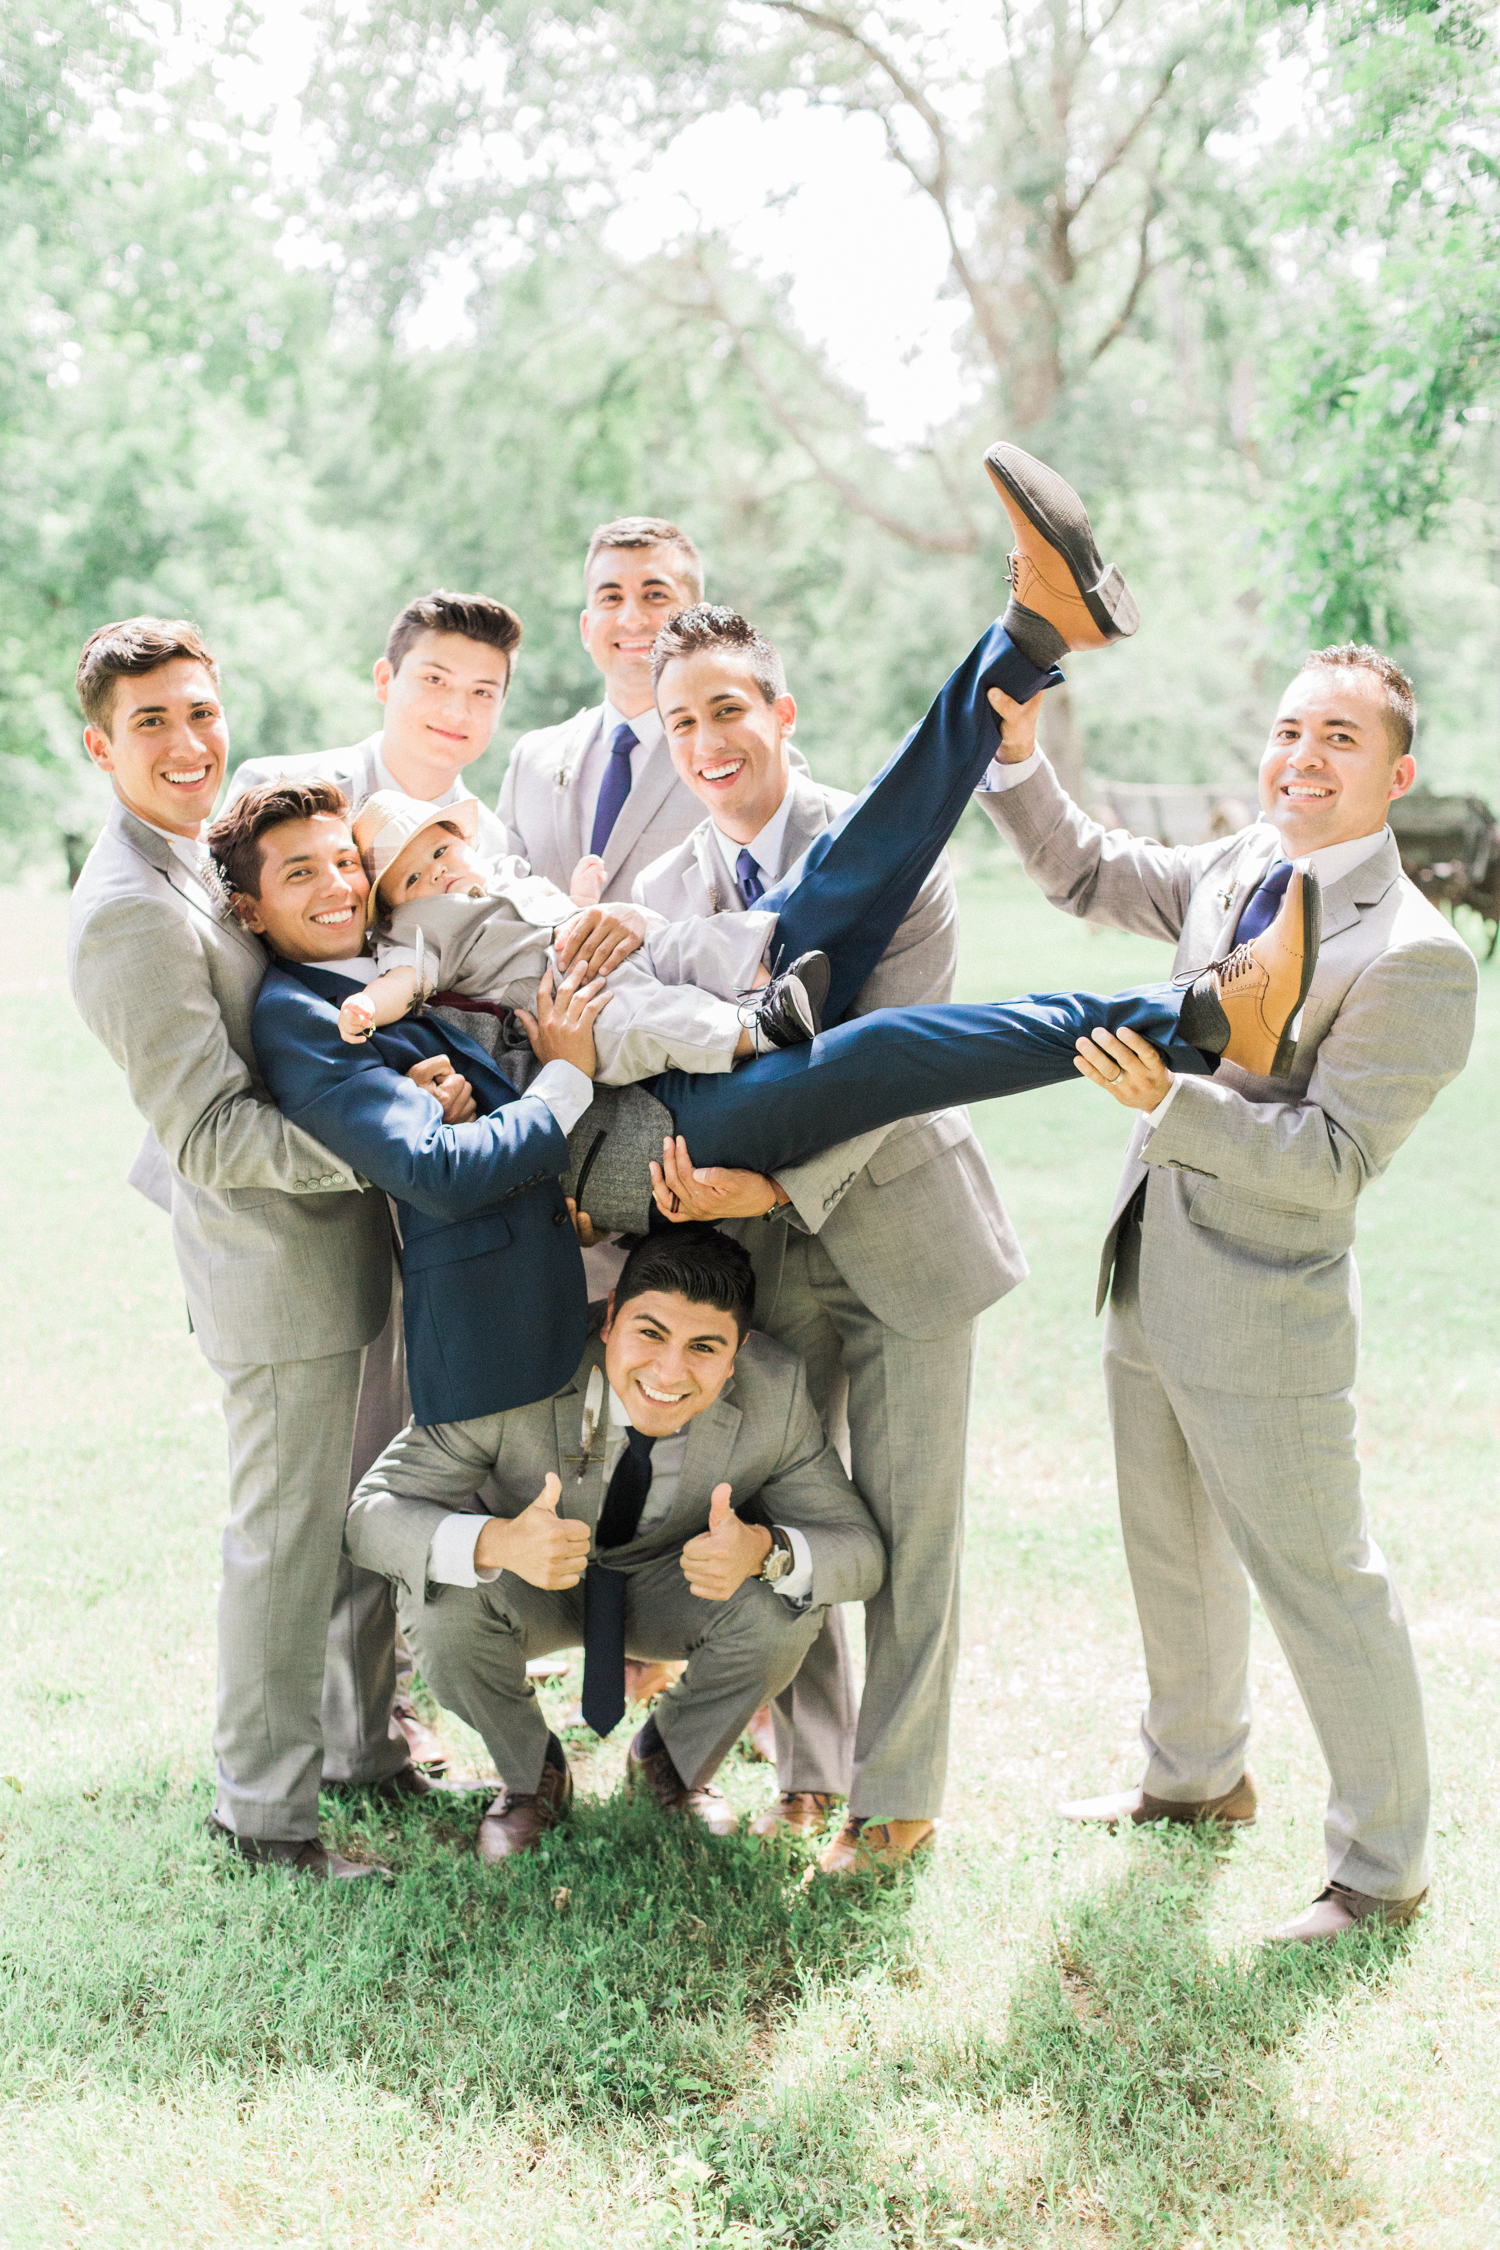 Groom and groomsmen. Summer, outdoor, barn wedding in north Georgia at Hays McDonald Farm in Jefferson, Georgia. Photo by Kesia Marie Photography- Fine Art Wedding Photographer.